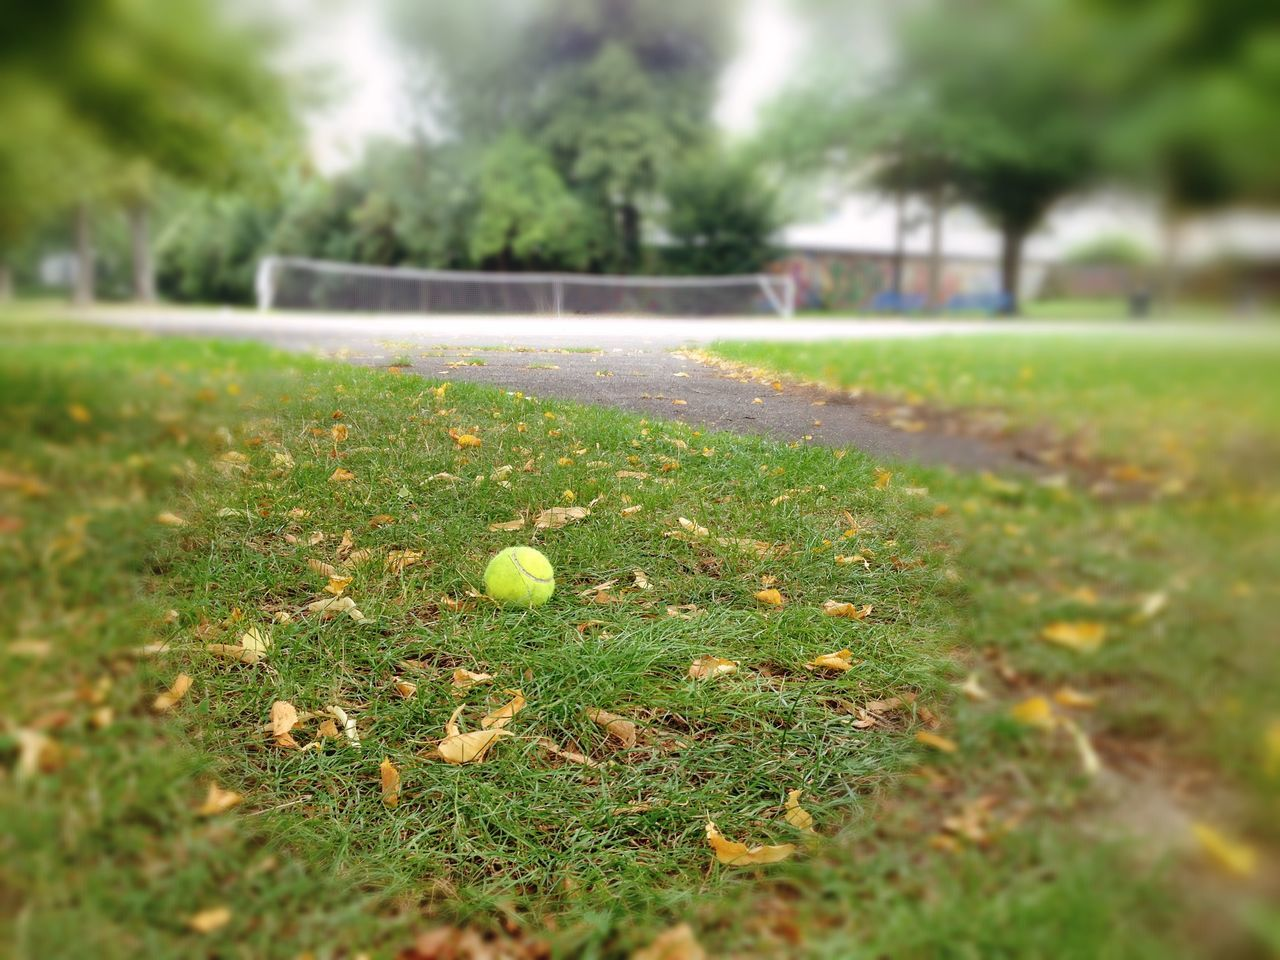 grass, green color, ball, selective focus, no people, day, outdoors, nature, growth, close-up, freshness, beauty in nature